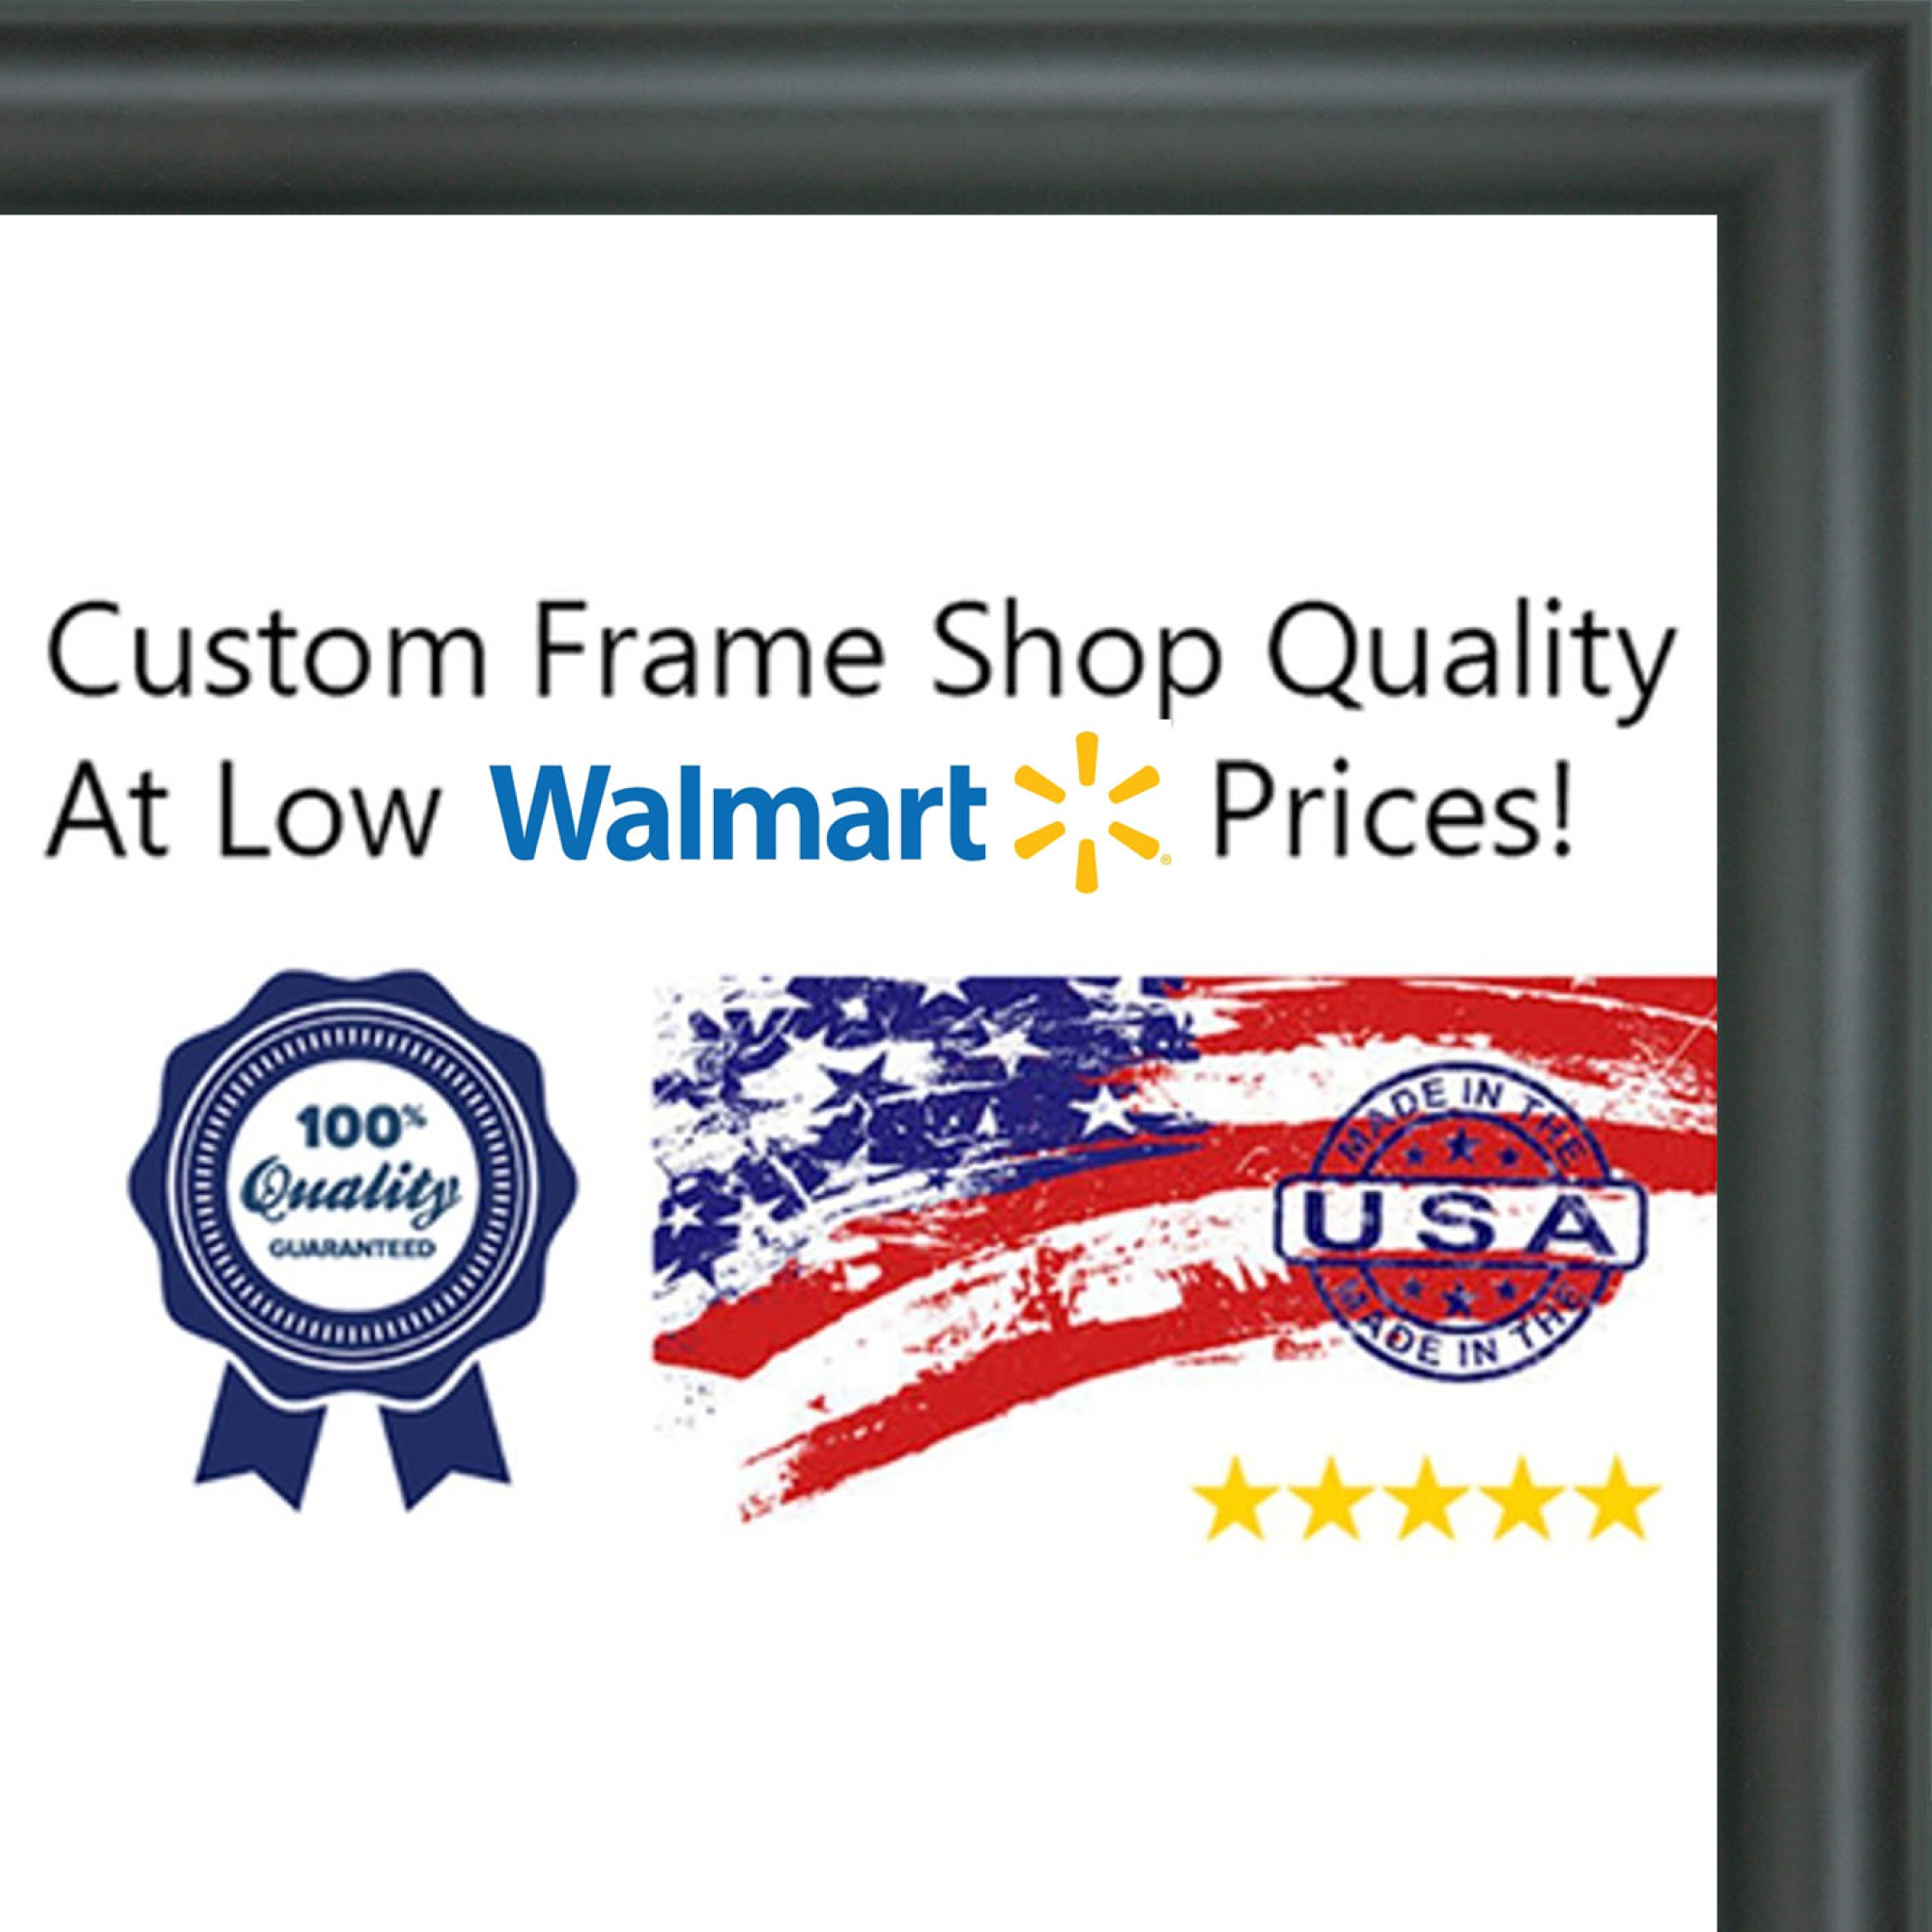 24x34 - 24 x 34 Rounded Black Solid Wood Frame with UV Framer's Acrylic & Foam Board Backing - Great For a Photo, P